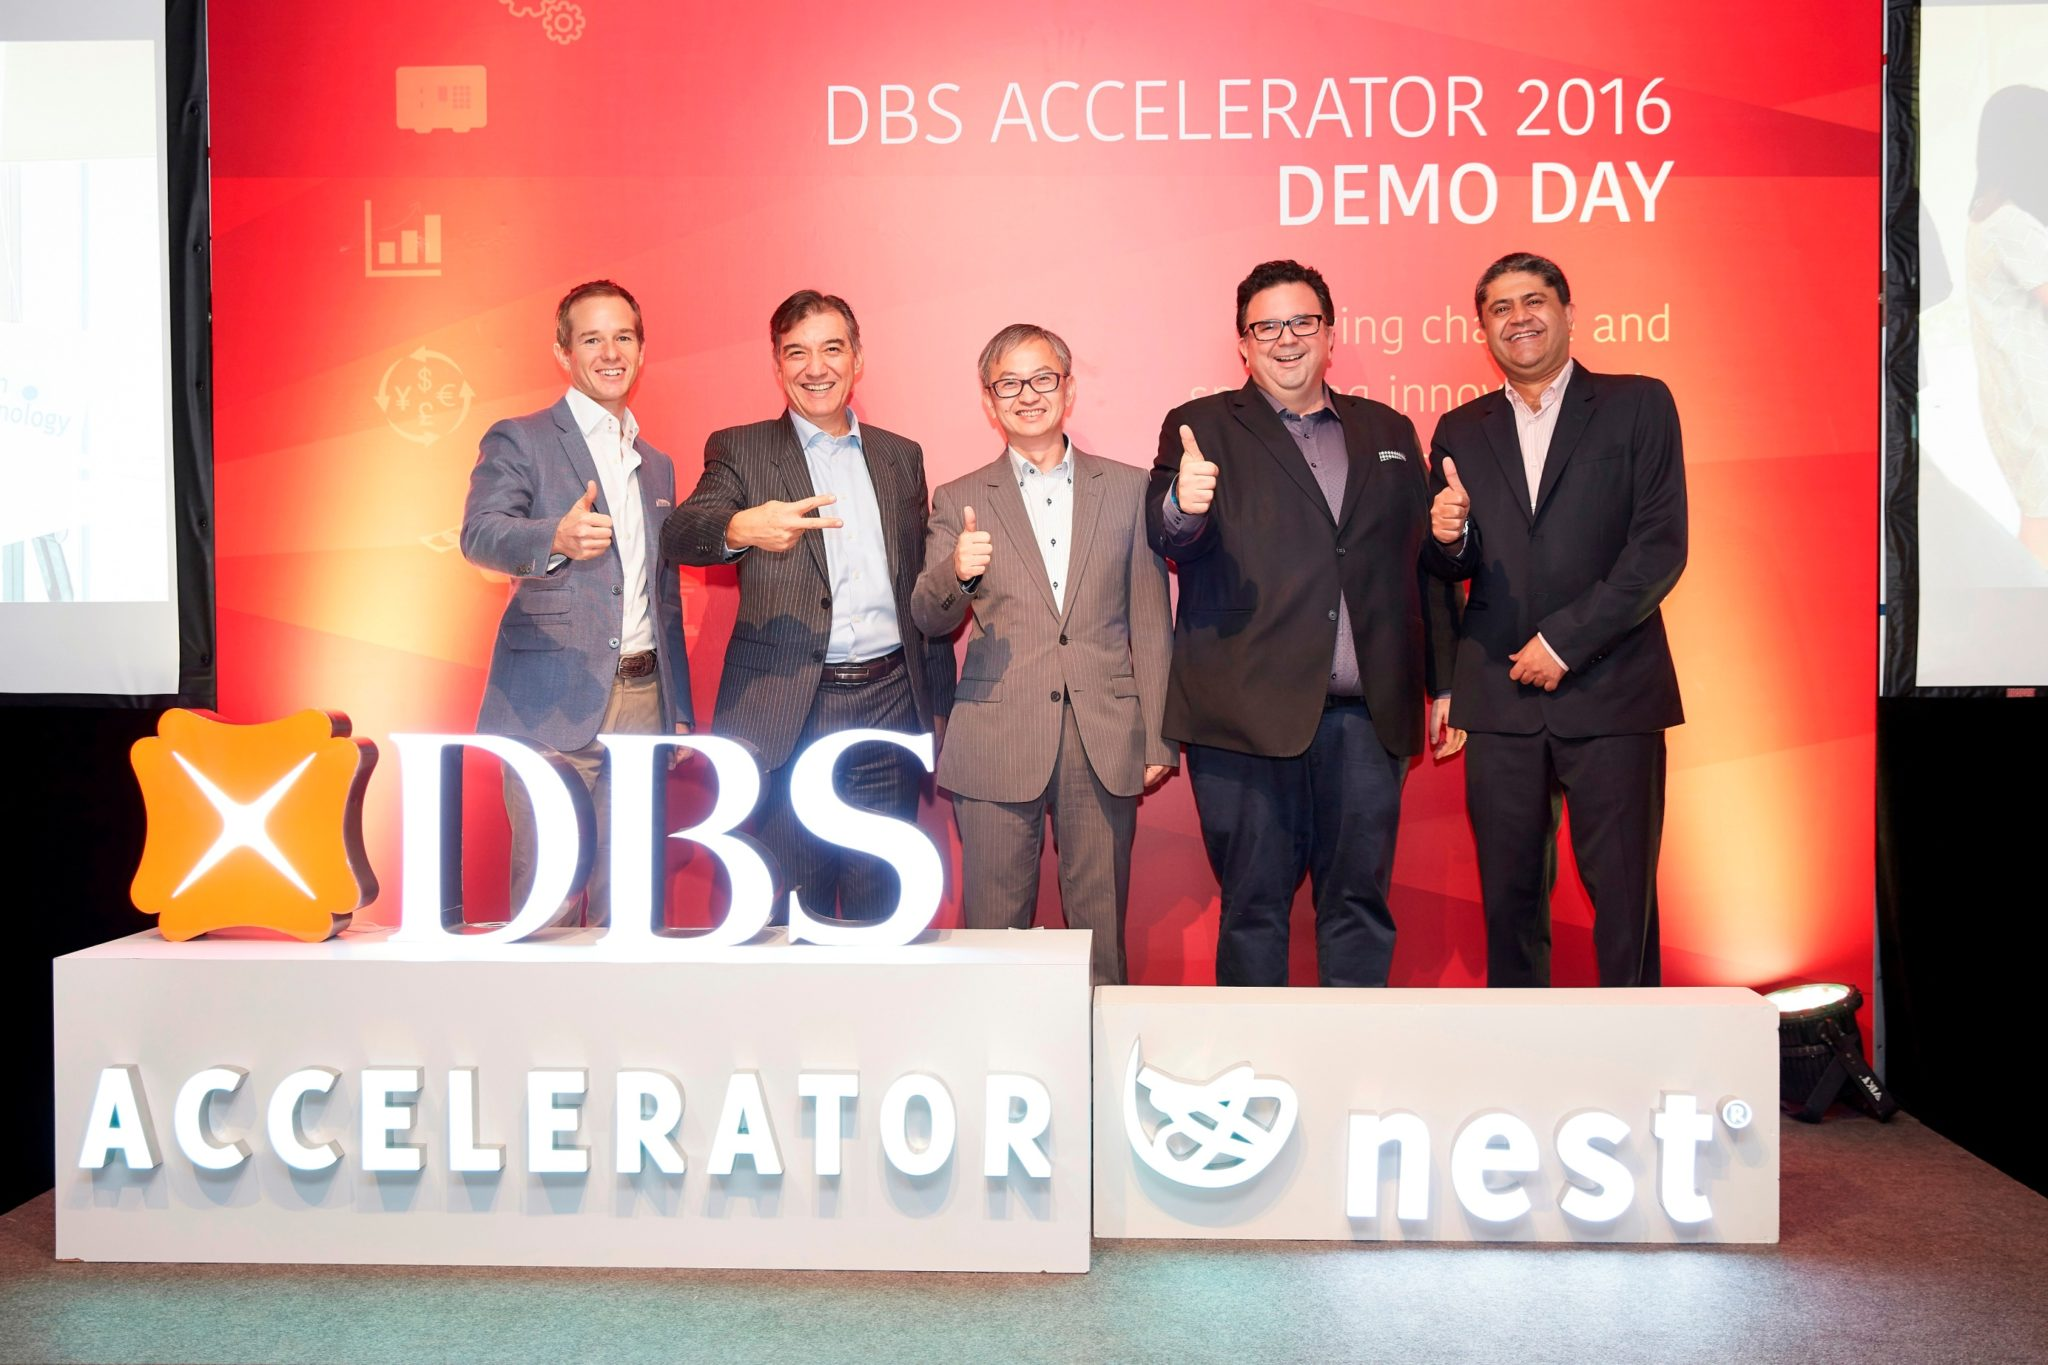 (from left to right) Lawrence Morgan, CEO of Nest, Sebastian Paredes, DBS Bank (Hong Kong) CEO, Under Secretary for Innovation and Technology Dr David Chung, Will Ross, Partner and Head of Nest Innovation at Nest, and Nimish Panchmatia, DBS Bank (Hong Kong)'s Managing Director and Head of Technology & Operations, Hong Kong & Mainland China, officiate at DBS Accelerator 2016 Demo Day.